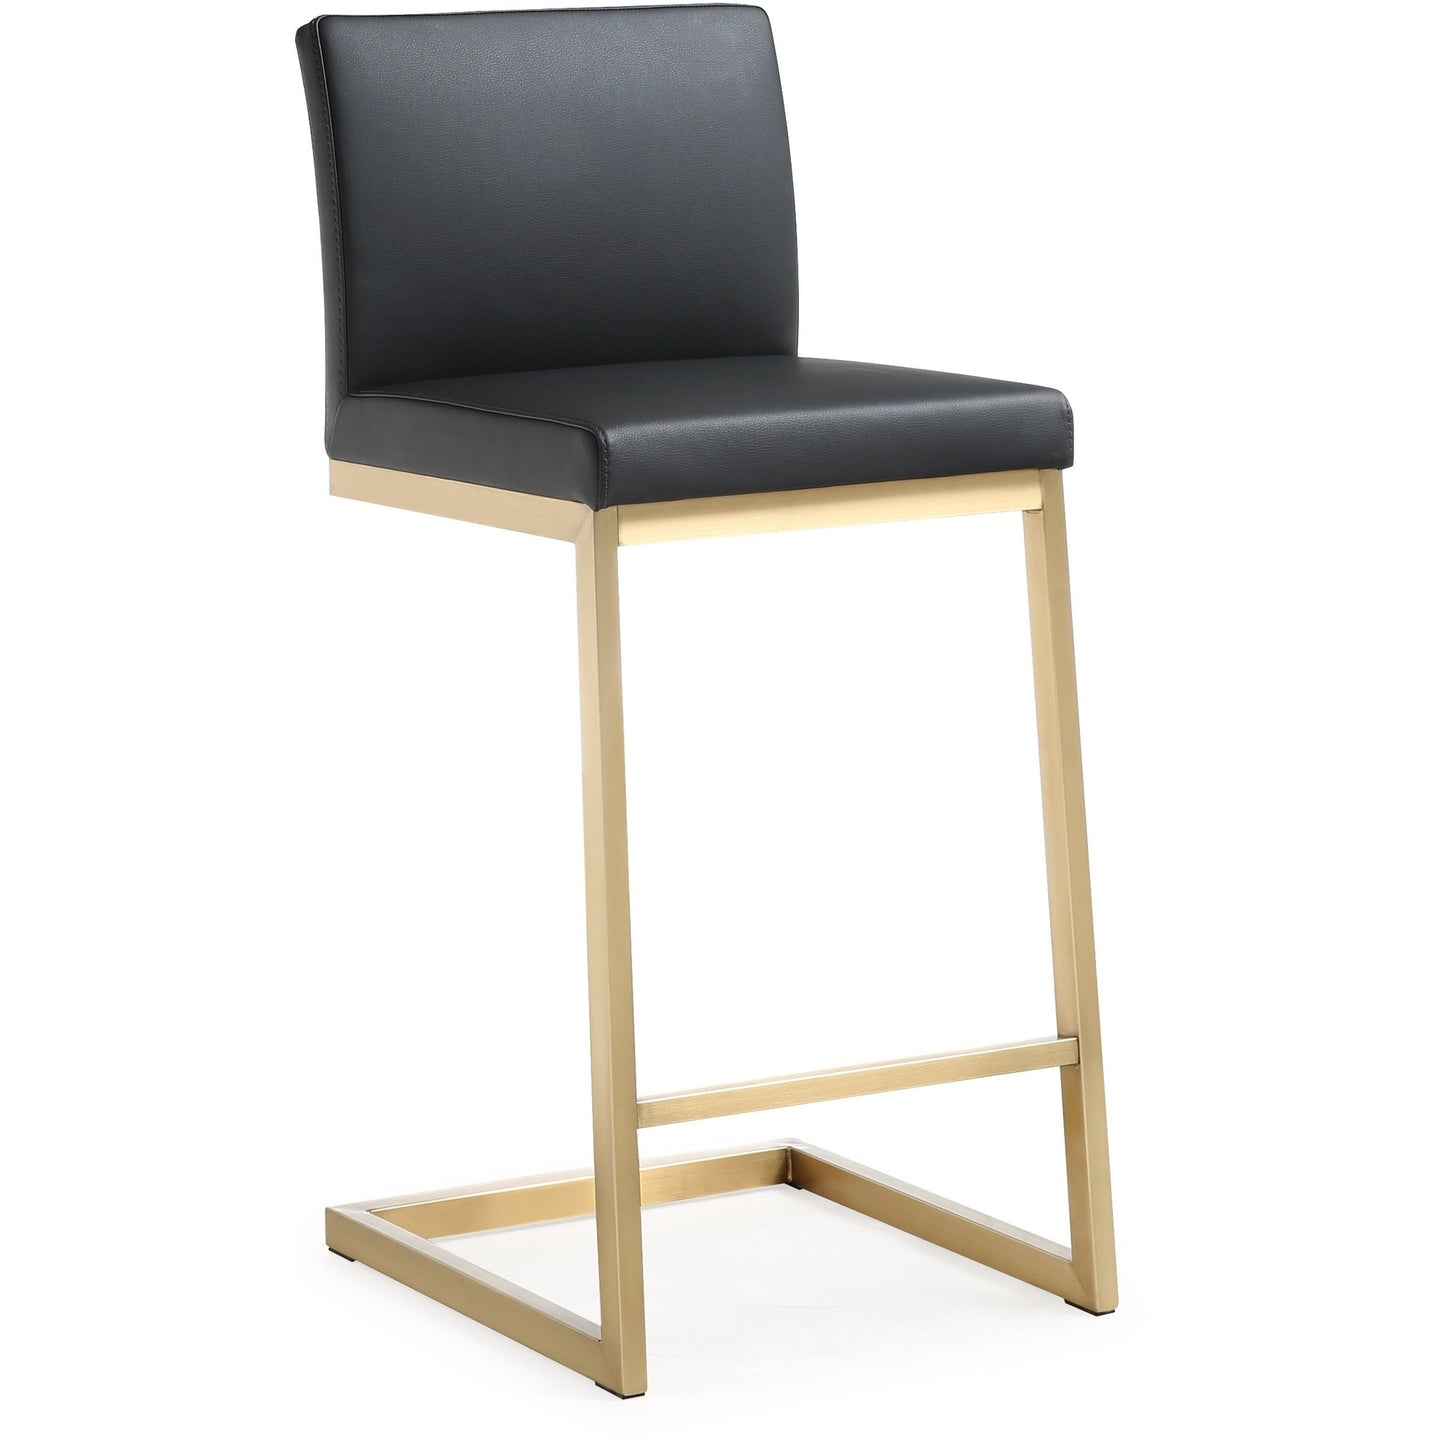 TOV Furniture Modern Parma Black Gold Steel Counter Stool - TOV-K3665-Minimal & Modern